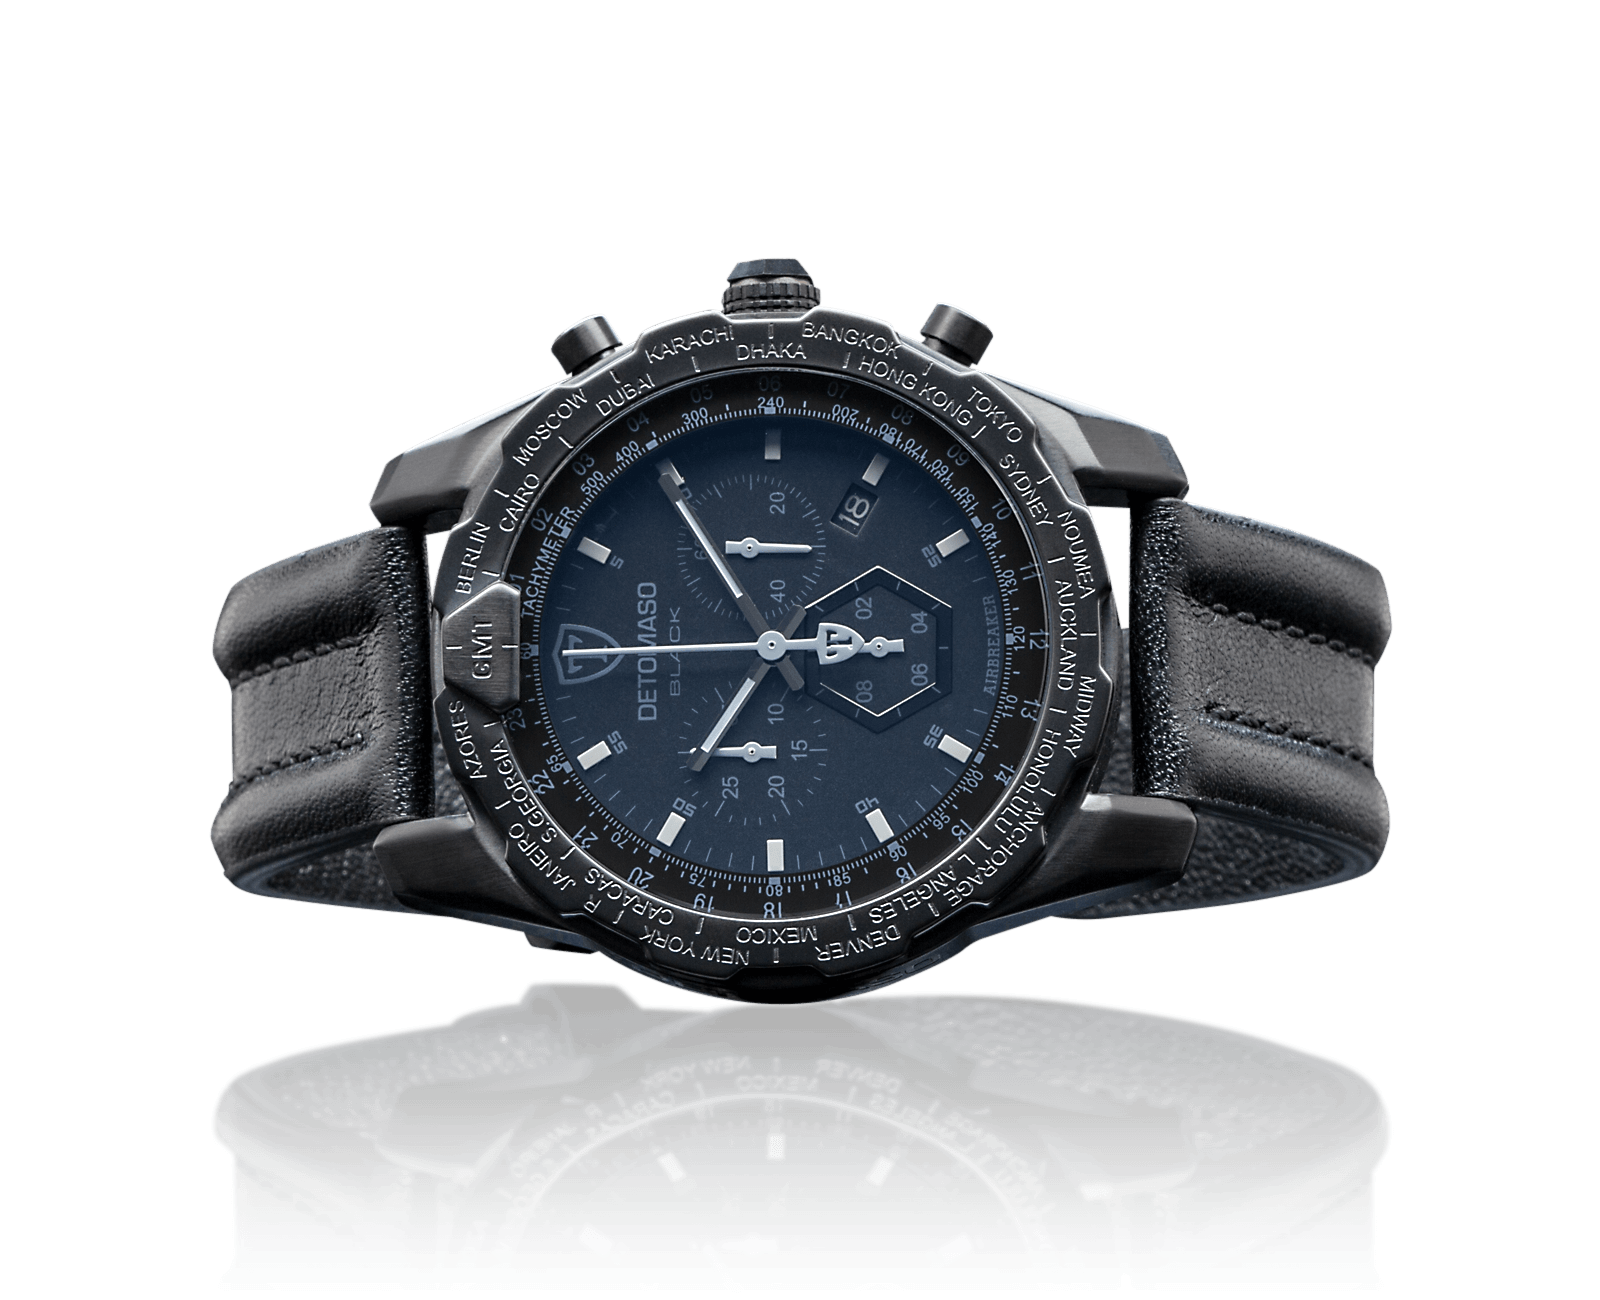 detomaso airbreaker black herrenuhr edelstahl chronograph. Black Bedroom Furniture Sets. Home Design Ideas